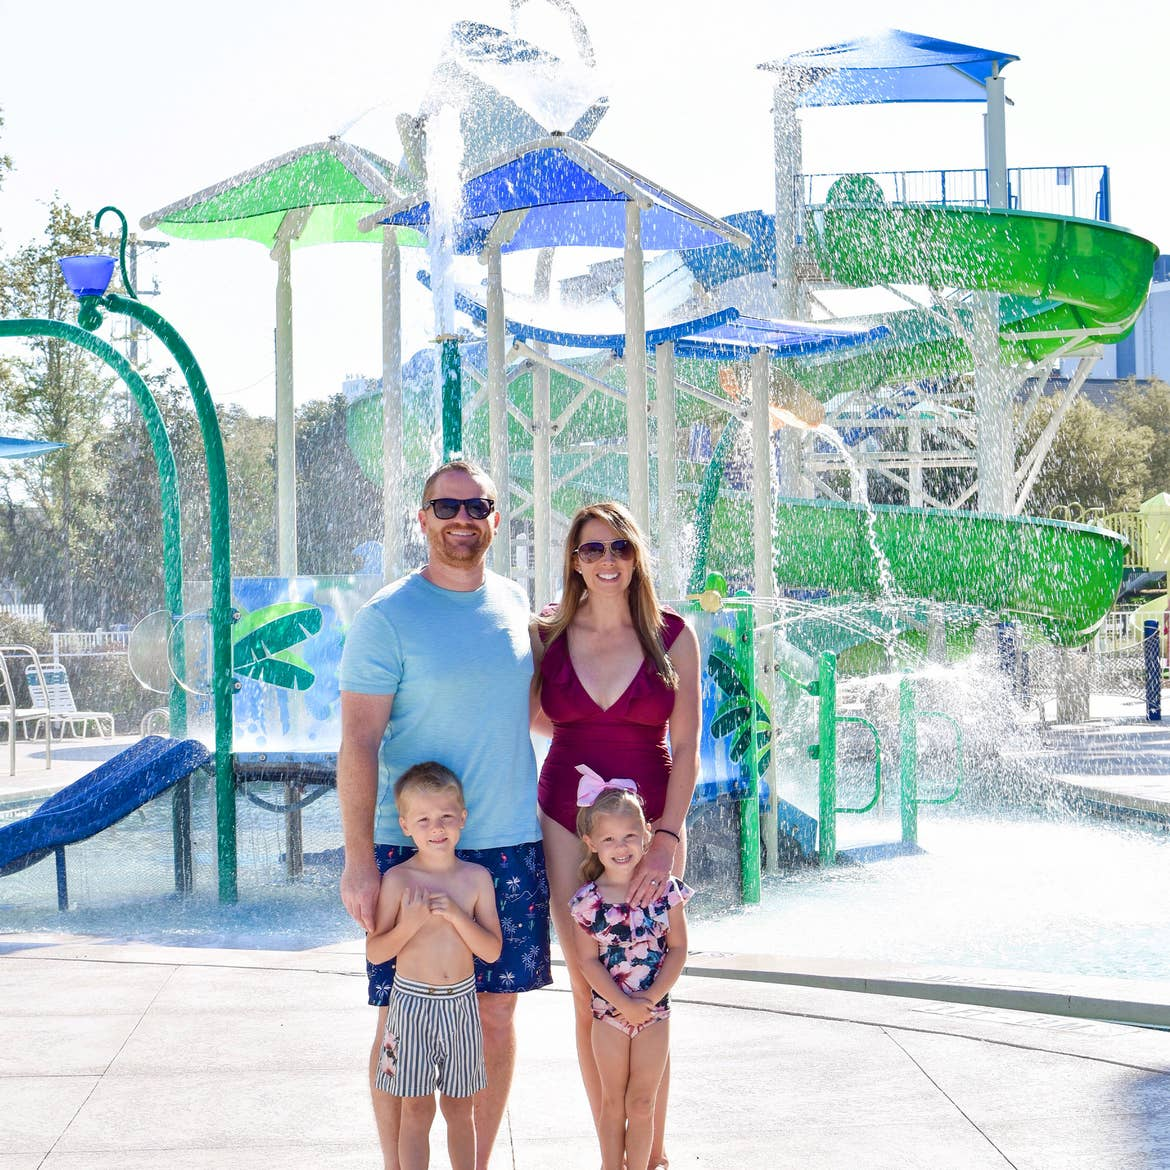 Featured Contributor, Brianna Steele (top right) stands with her family near the splash pad of our South Beach resort in Myrtle Beach, SC.